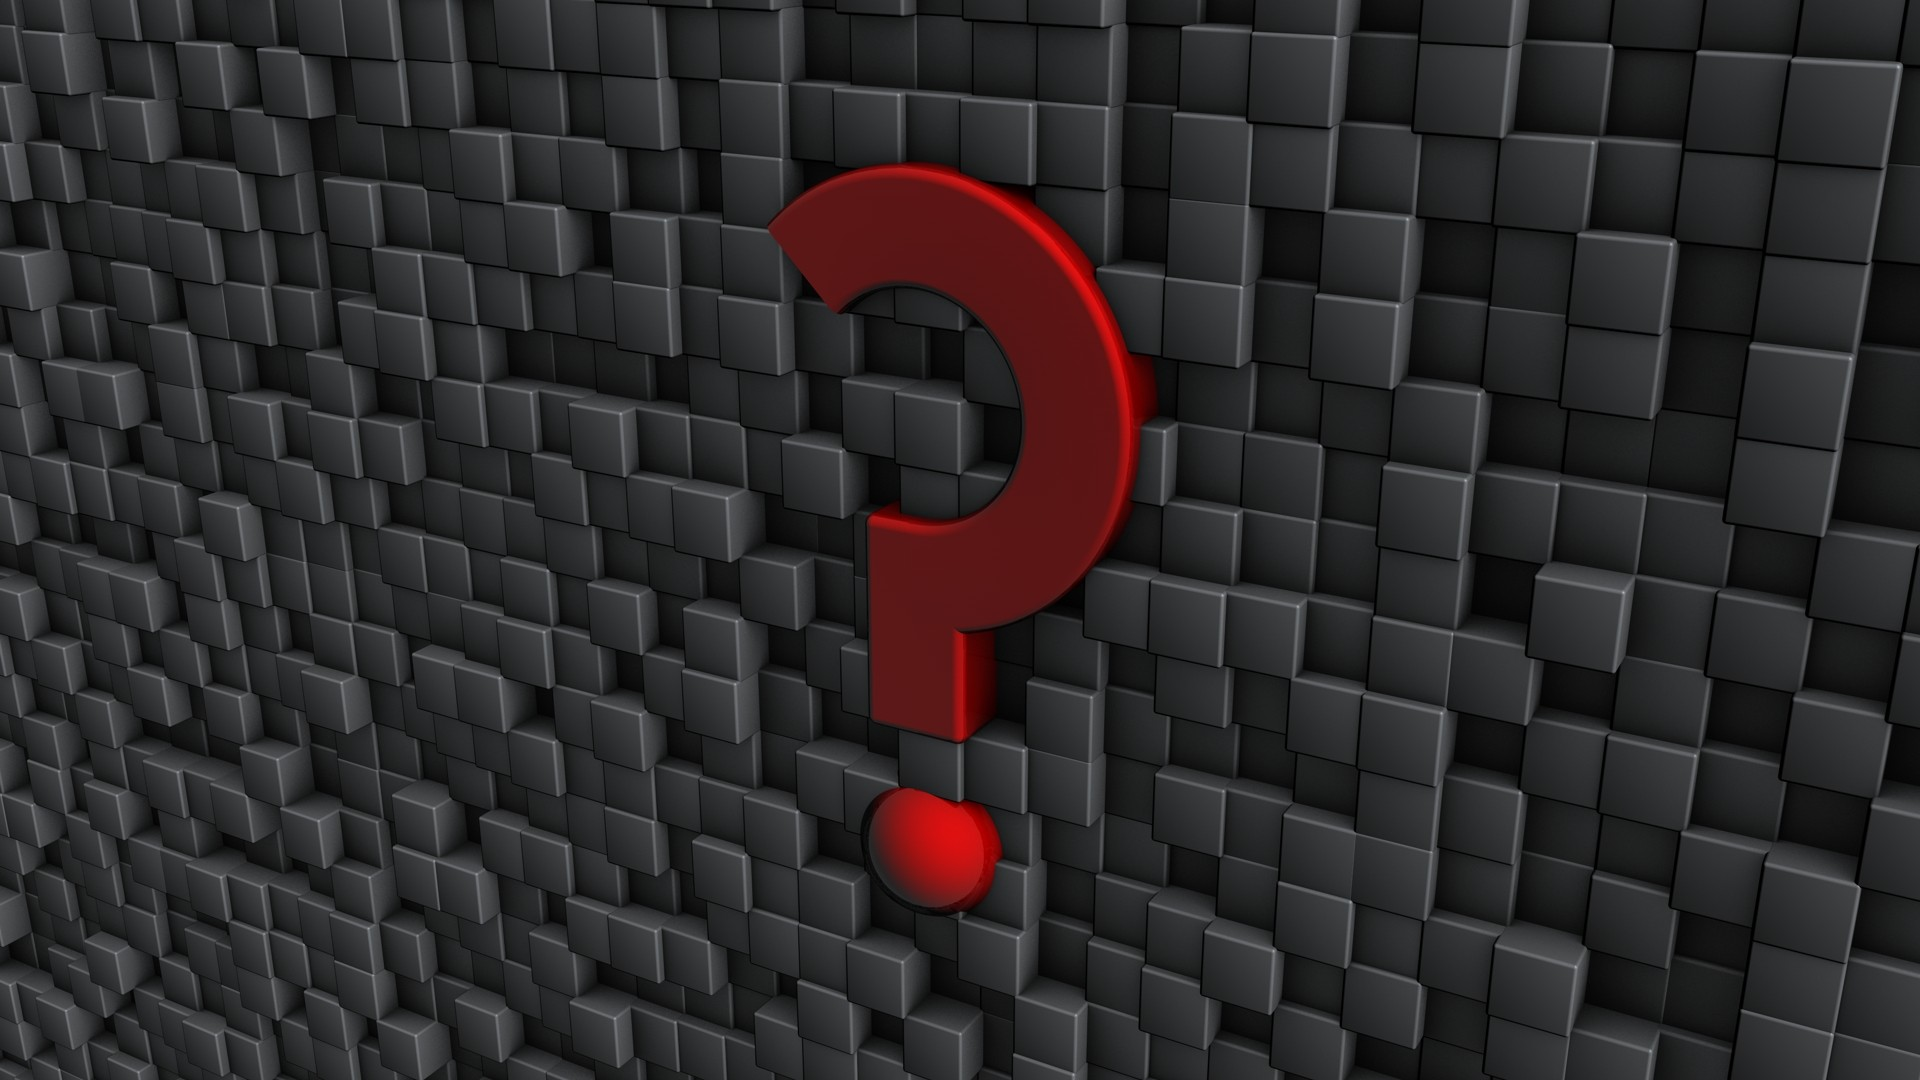 question mark Computer Wallpapers, Desktop Backgrounds ...